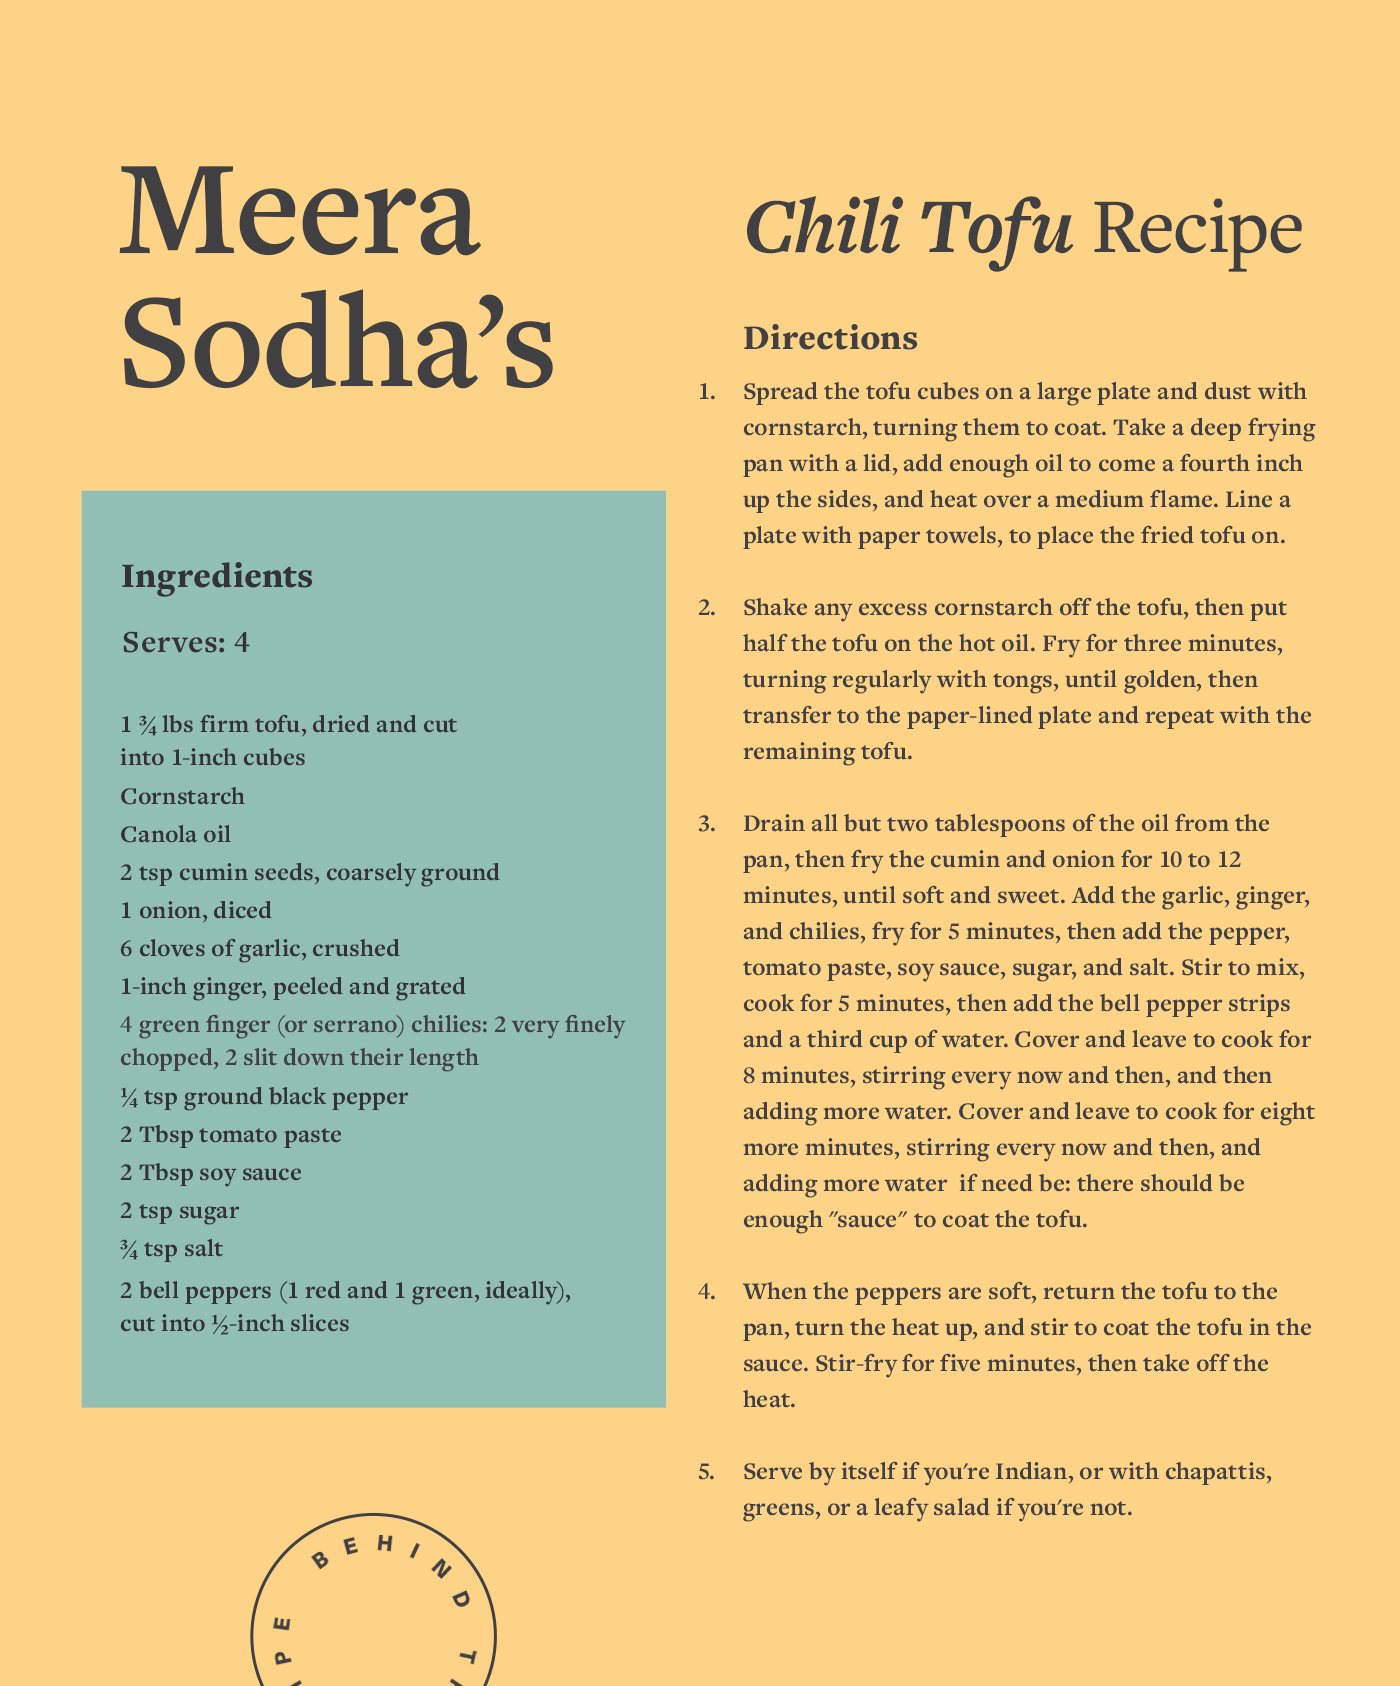 chili tofu recipe card